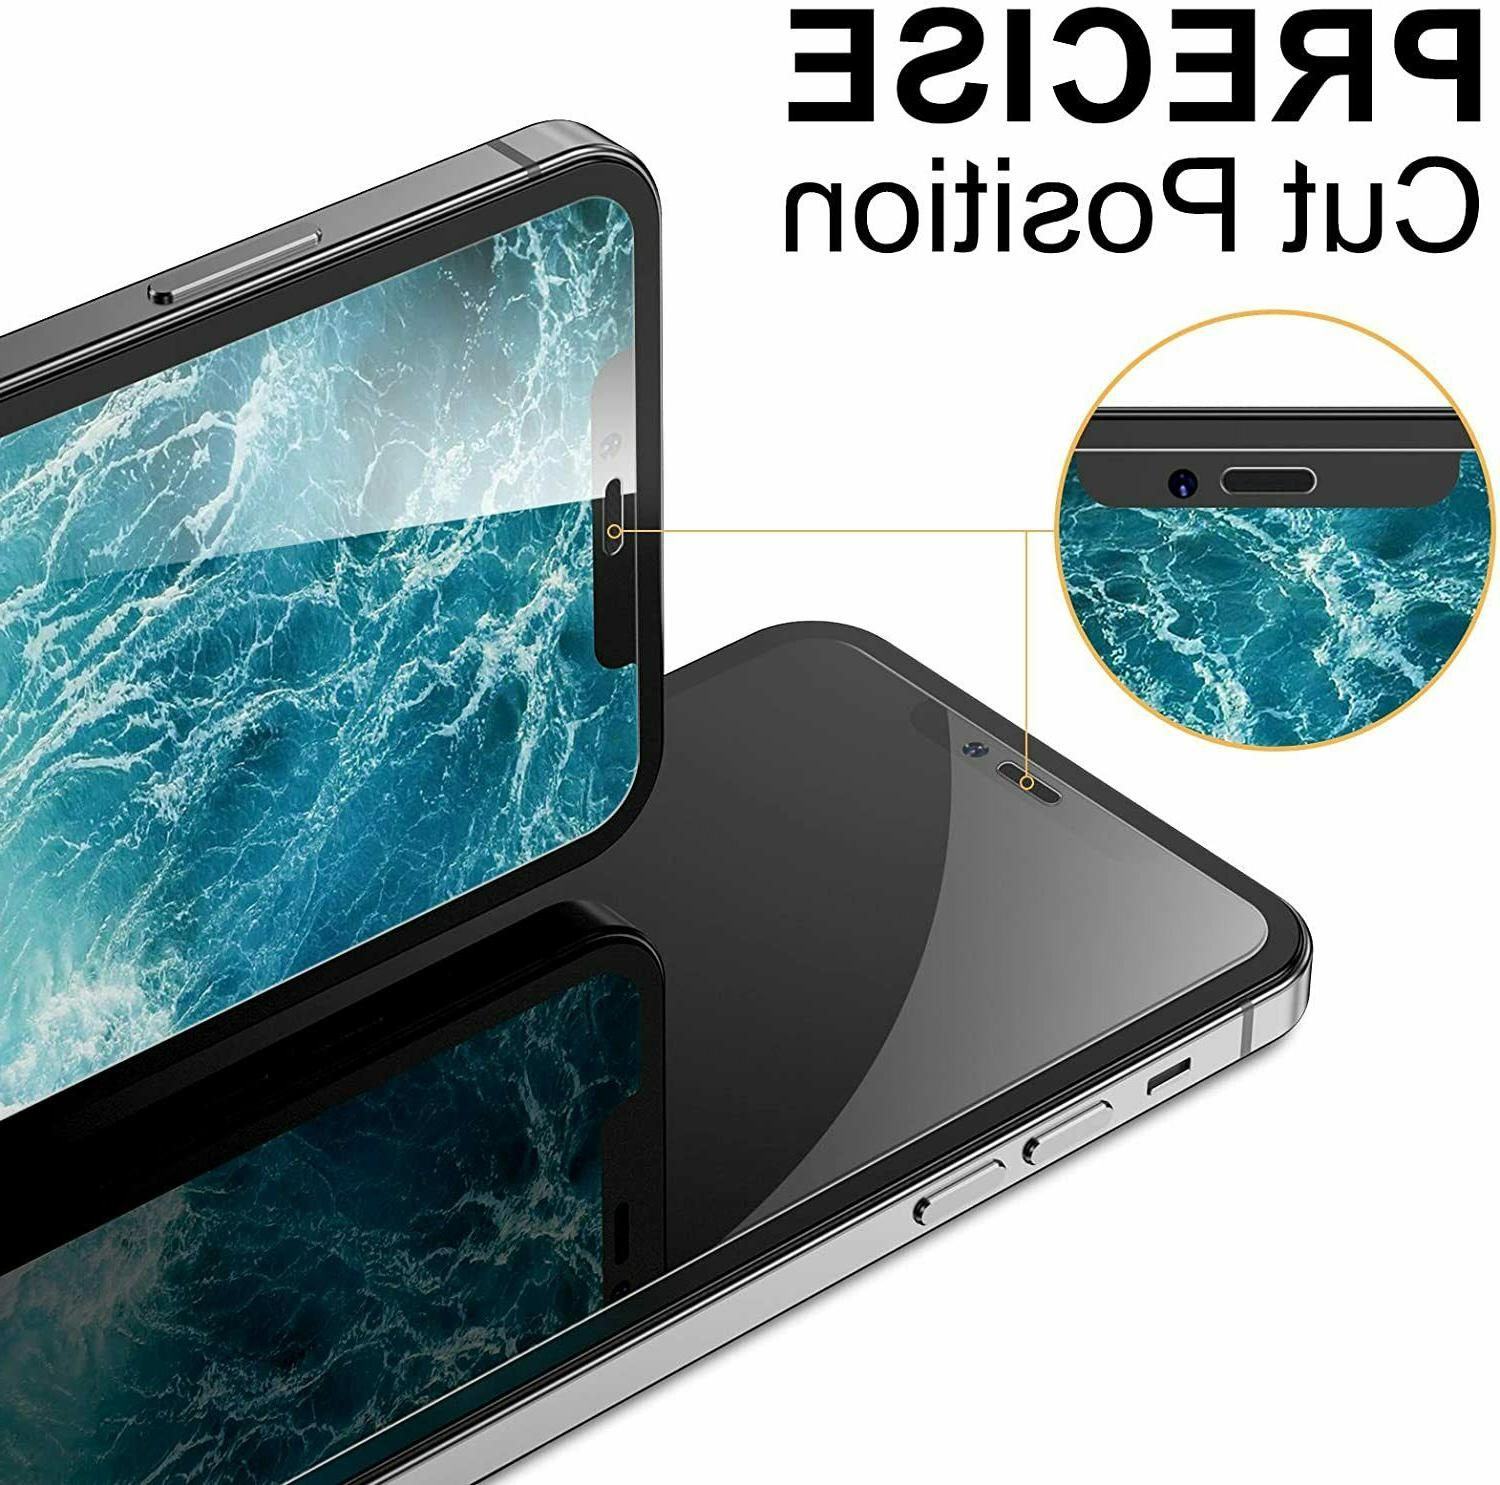 4 Pack Pro iPhone 12 Pro Glass Protector